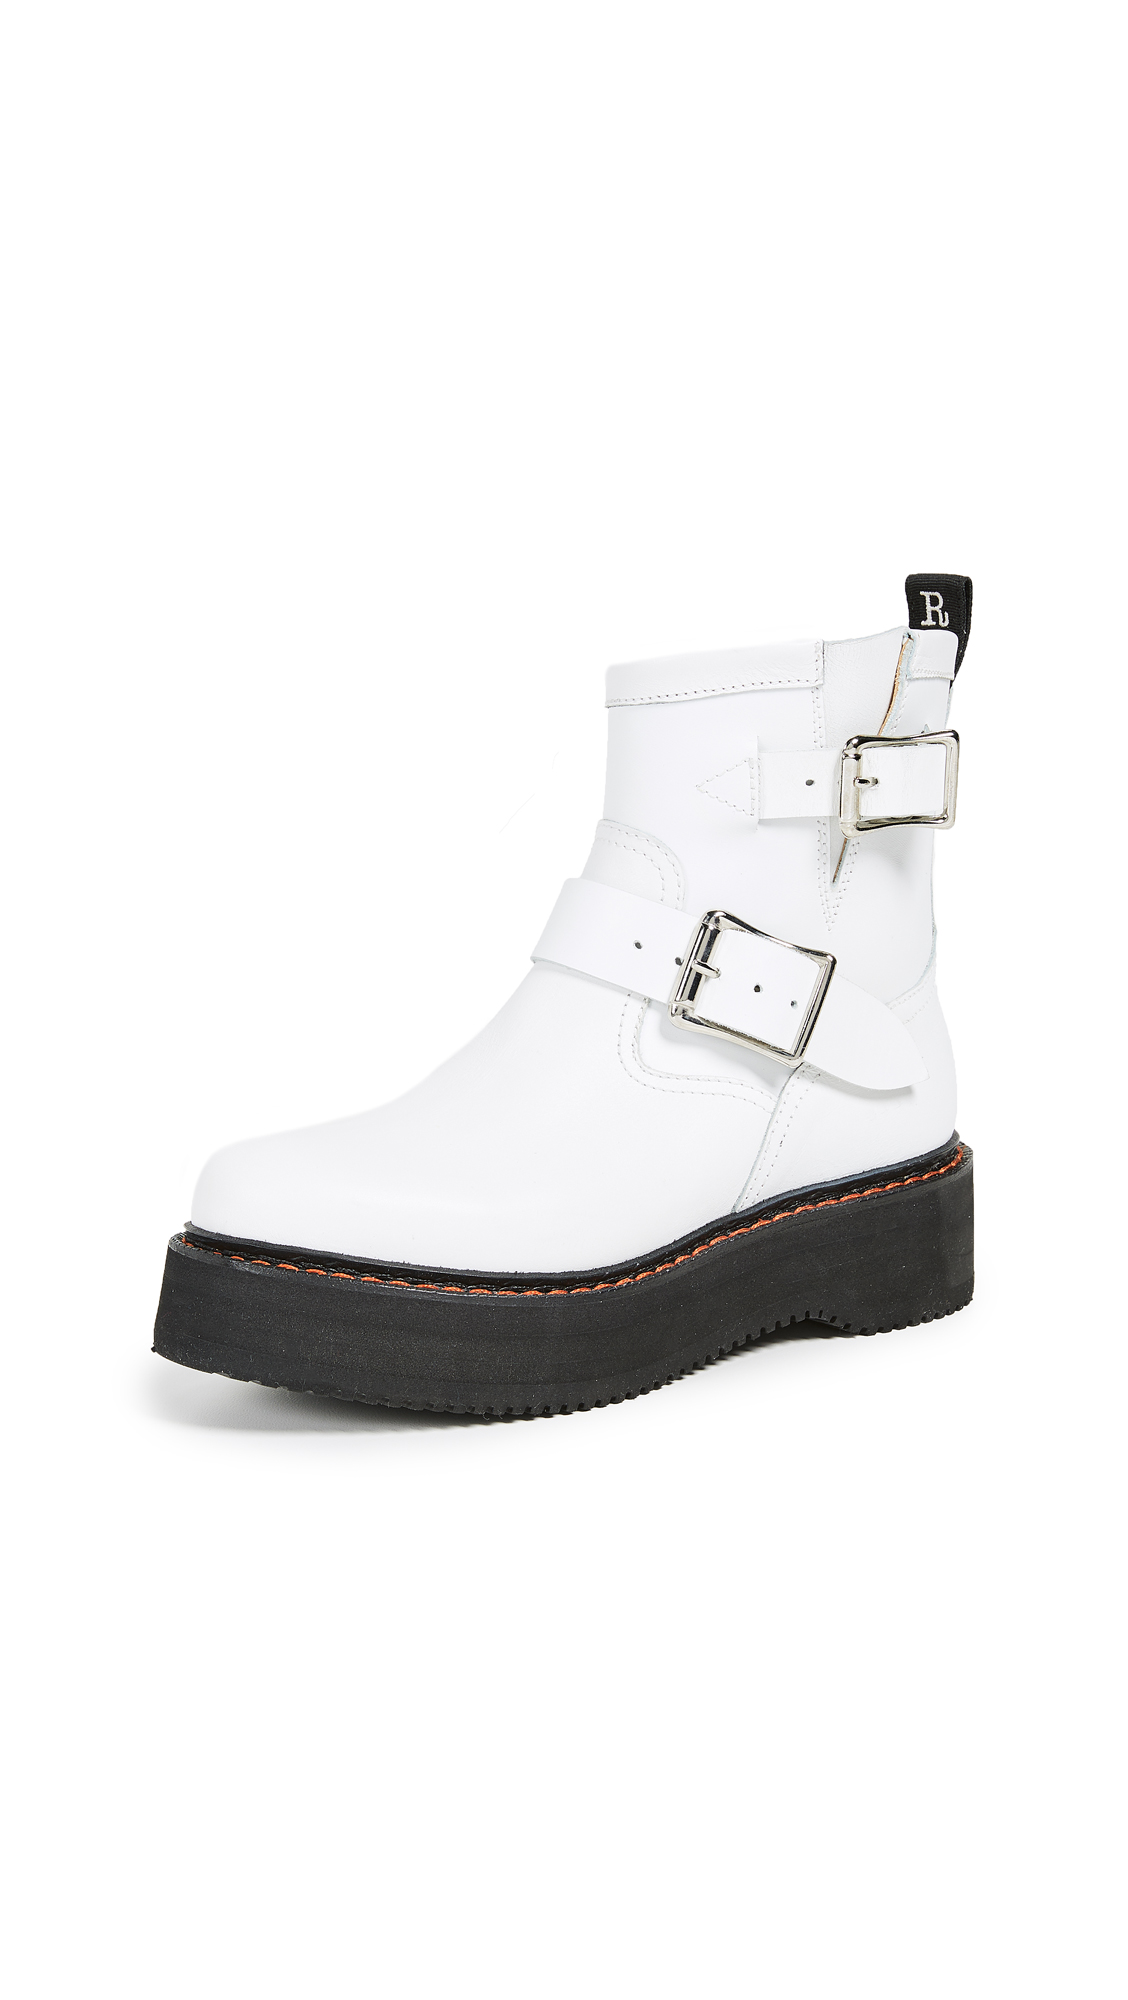 R13 Single Stack Engineer Boots - White